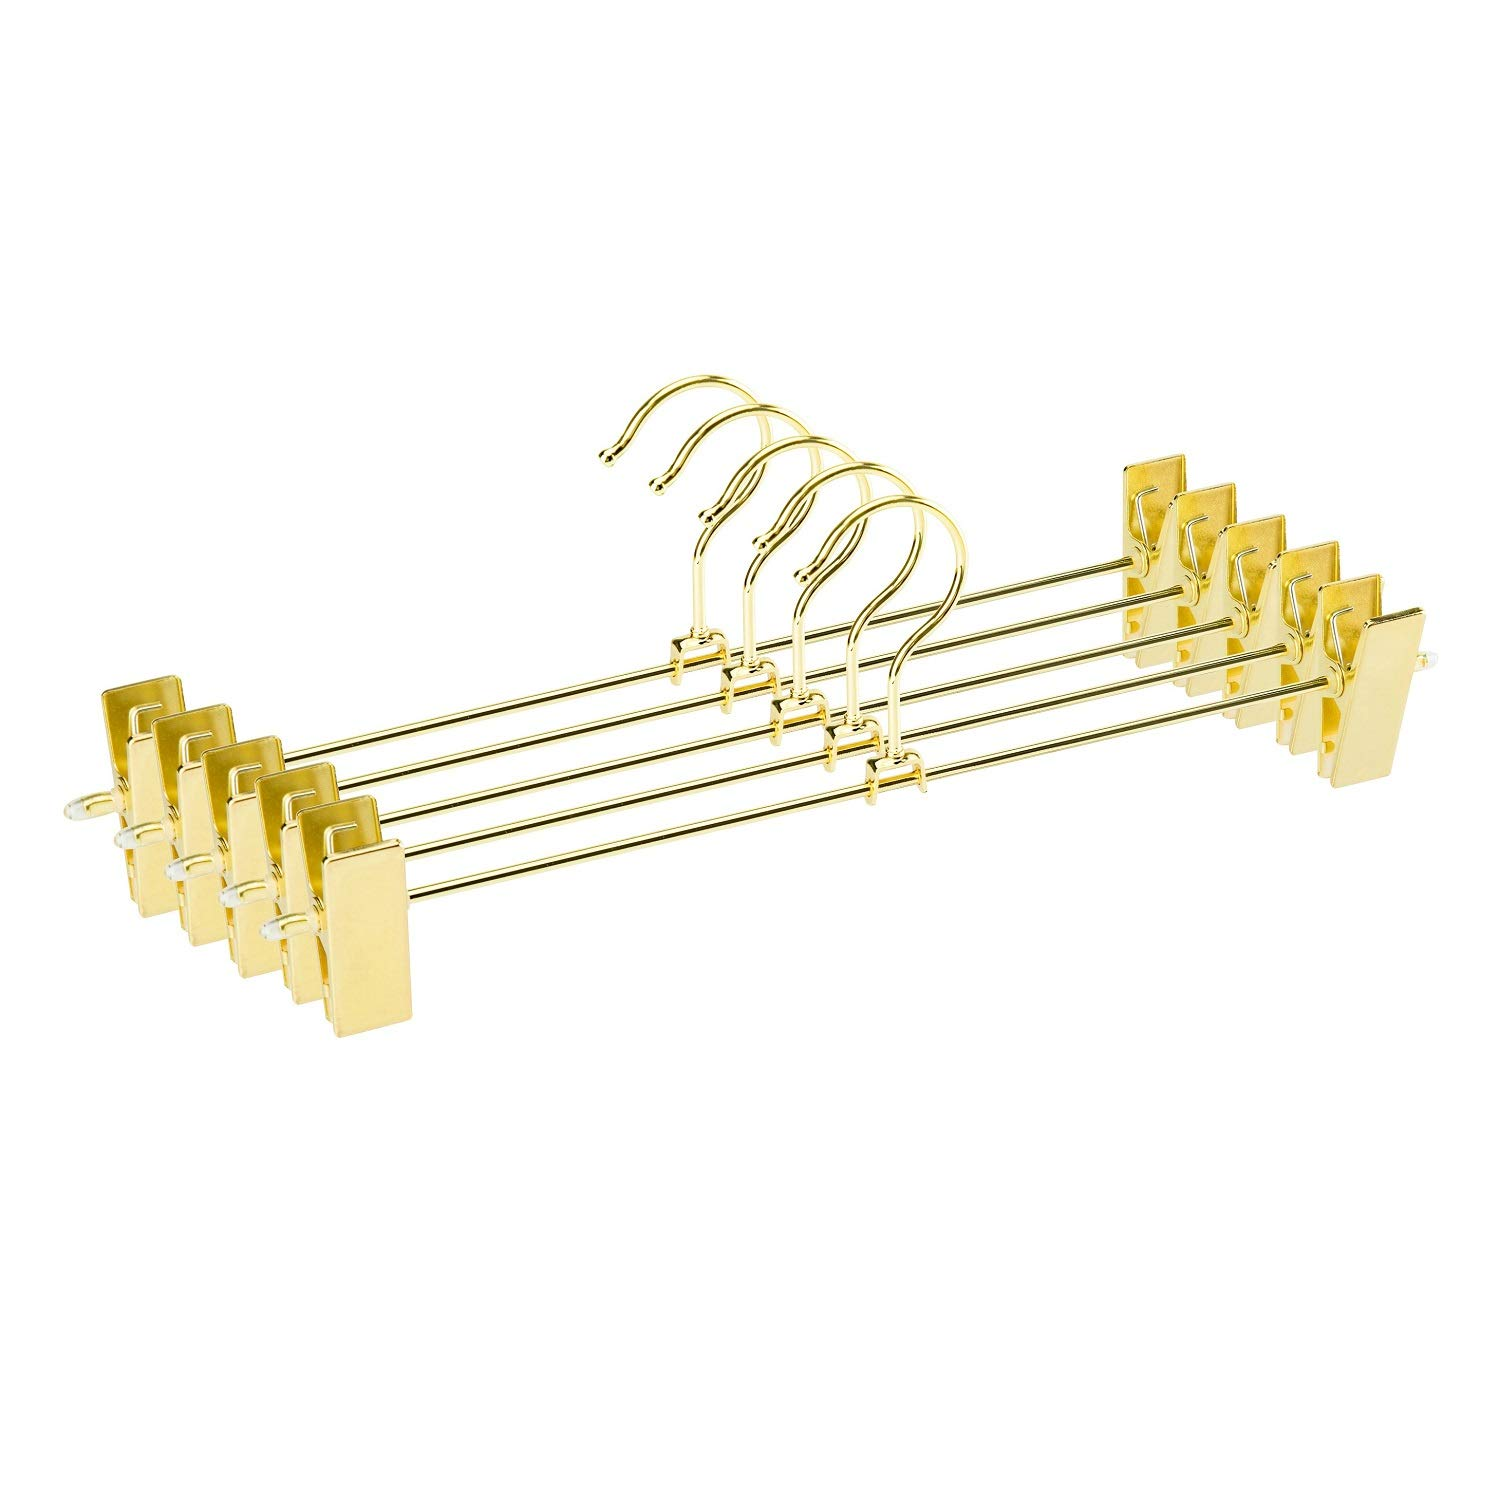 Jetdio Metal Heavy Duty Pants Skirt Slacks Hangers,Trousers Hangers with Two Adjustable Clips and 360-degree Swivel Hook, 12 Pack, Gold by Jetdio